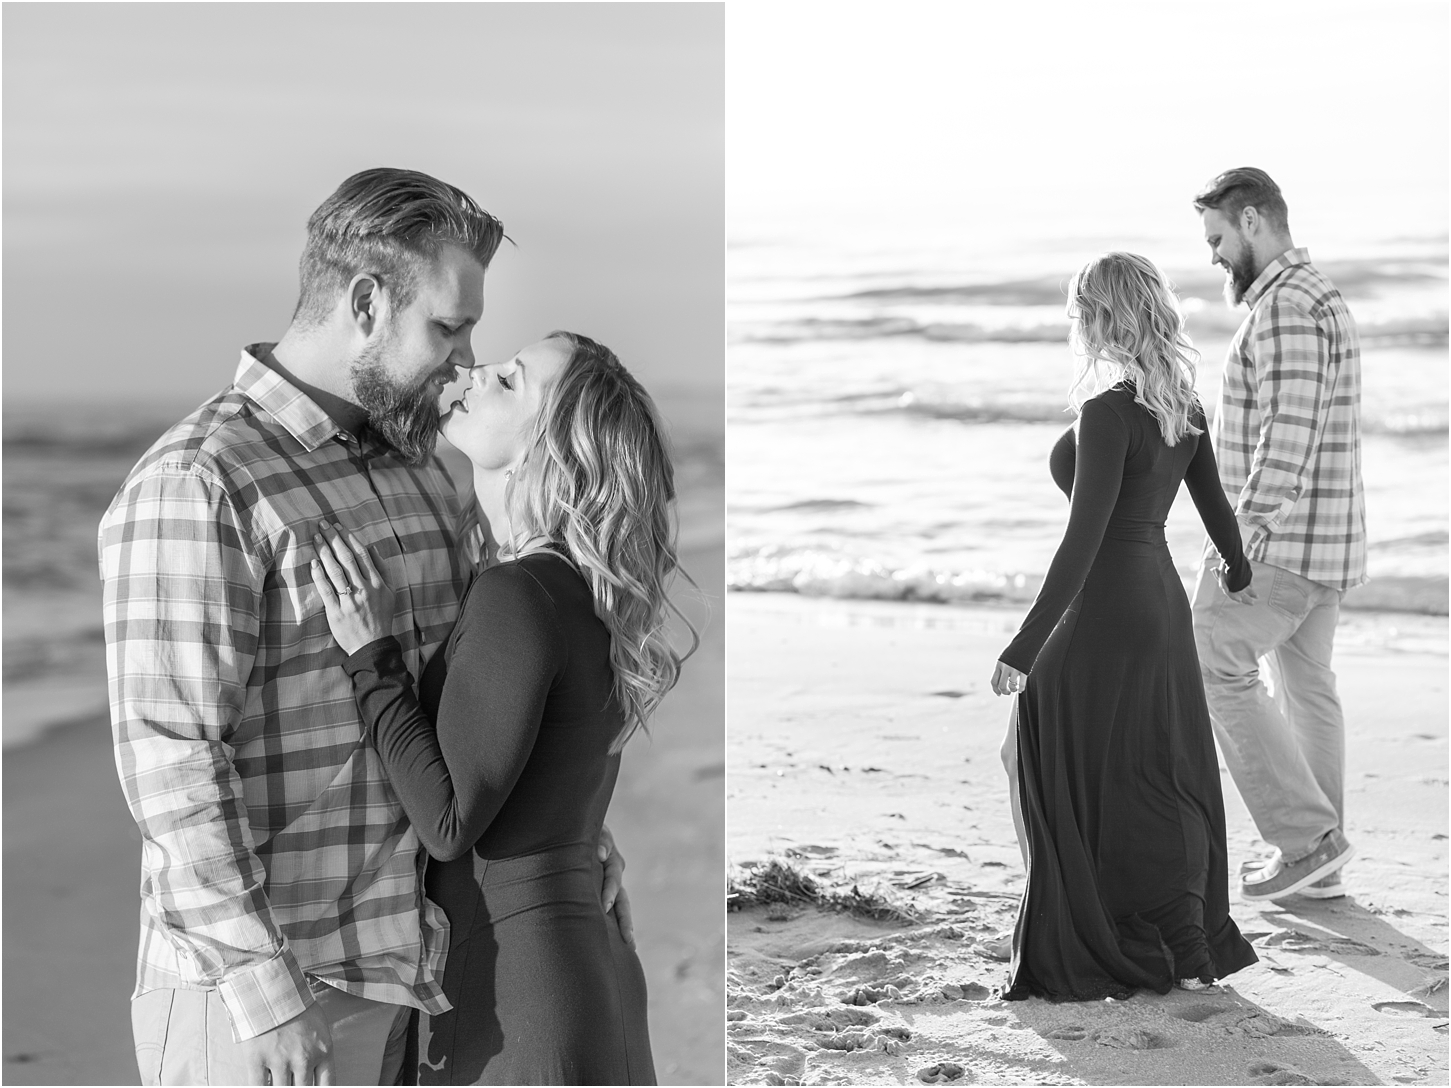 romantic-sunset-beach-engagement-photos-at-silver-beach-in-saint-joseph-mi-by-courtney-carolyn-photography_0032.jpg